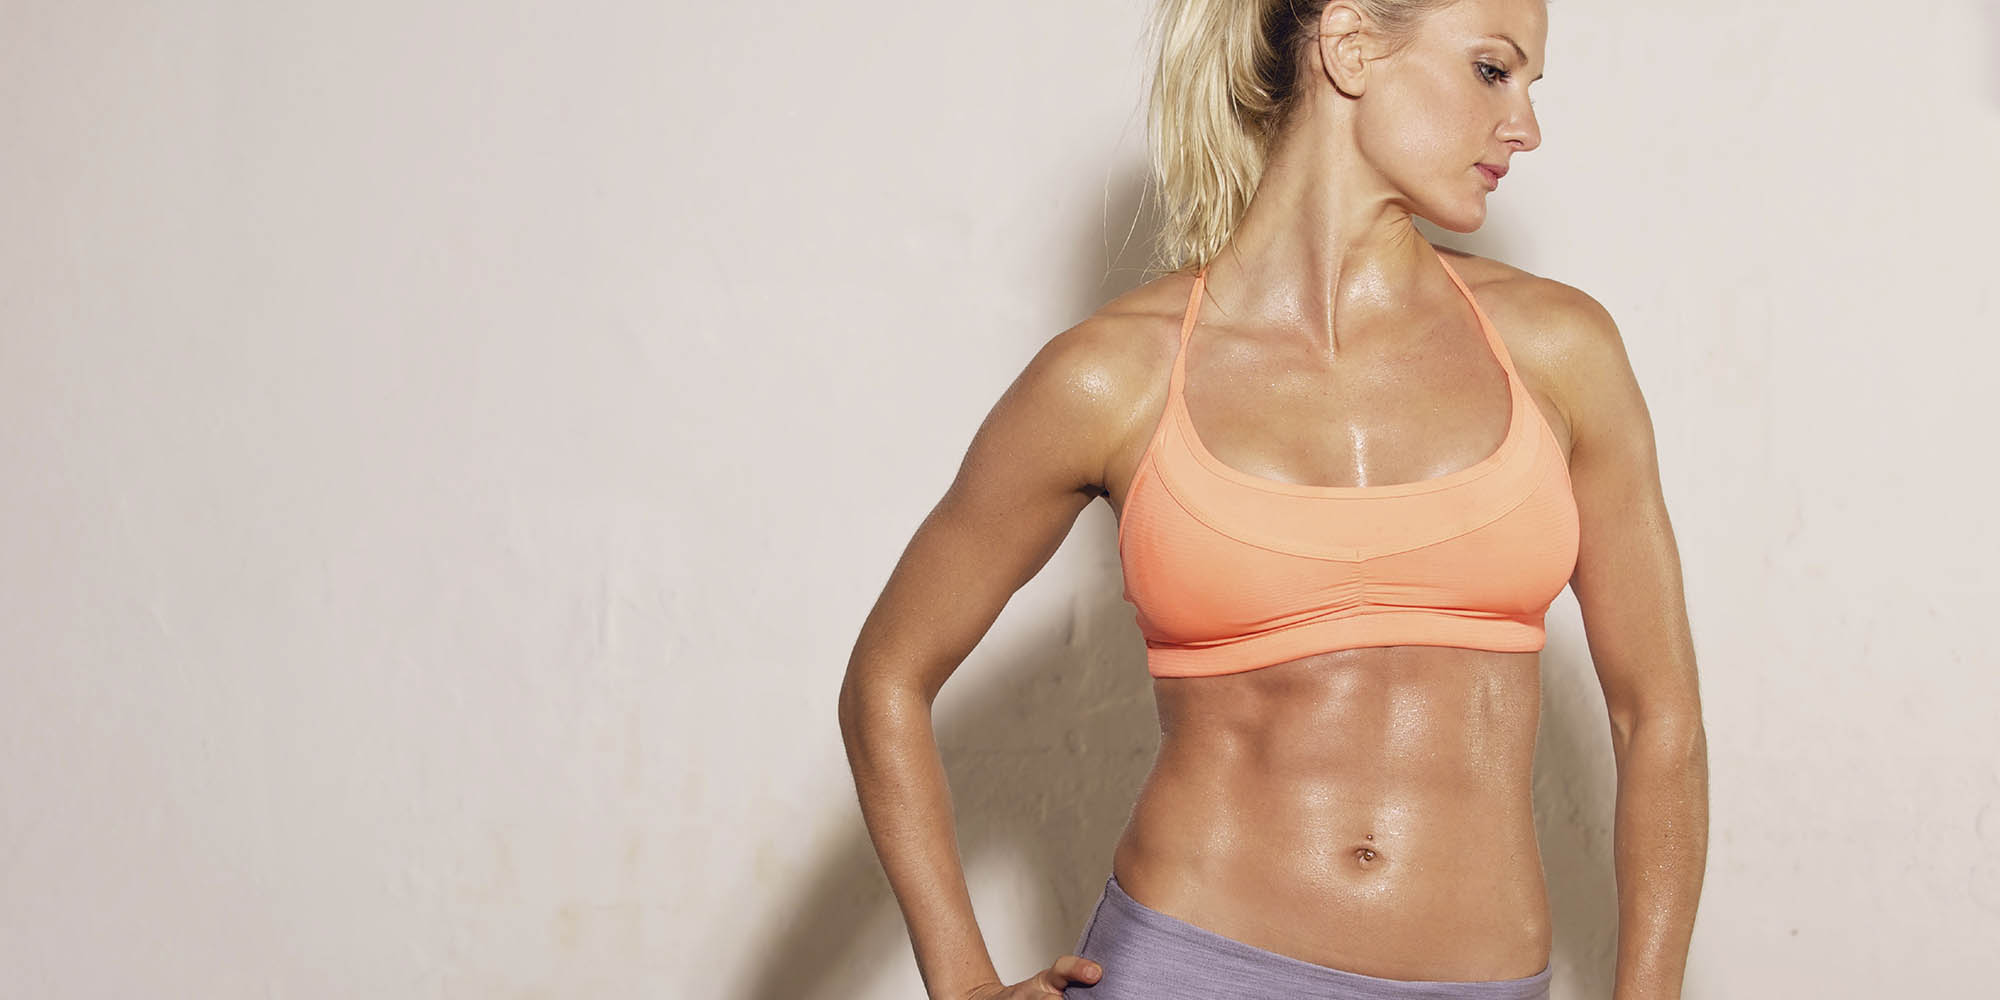 7 Ways to Eat Your Way to Great Abs